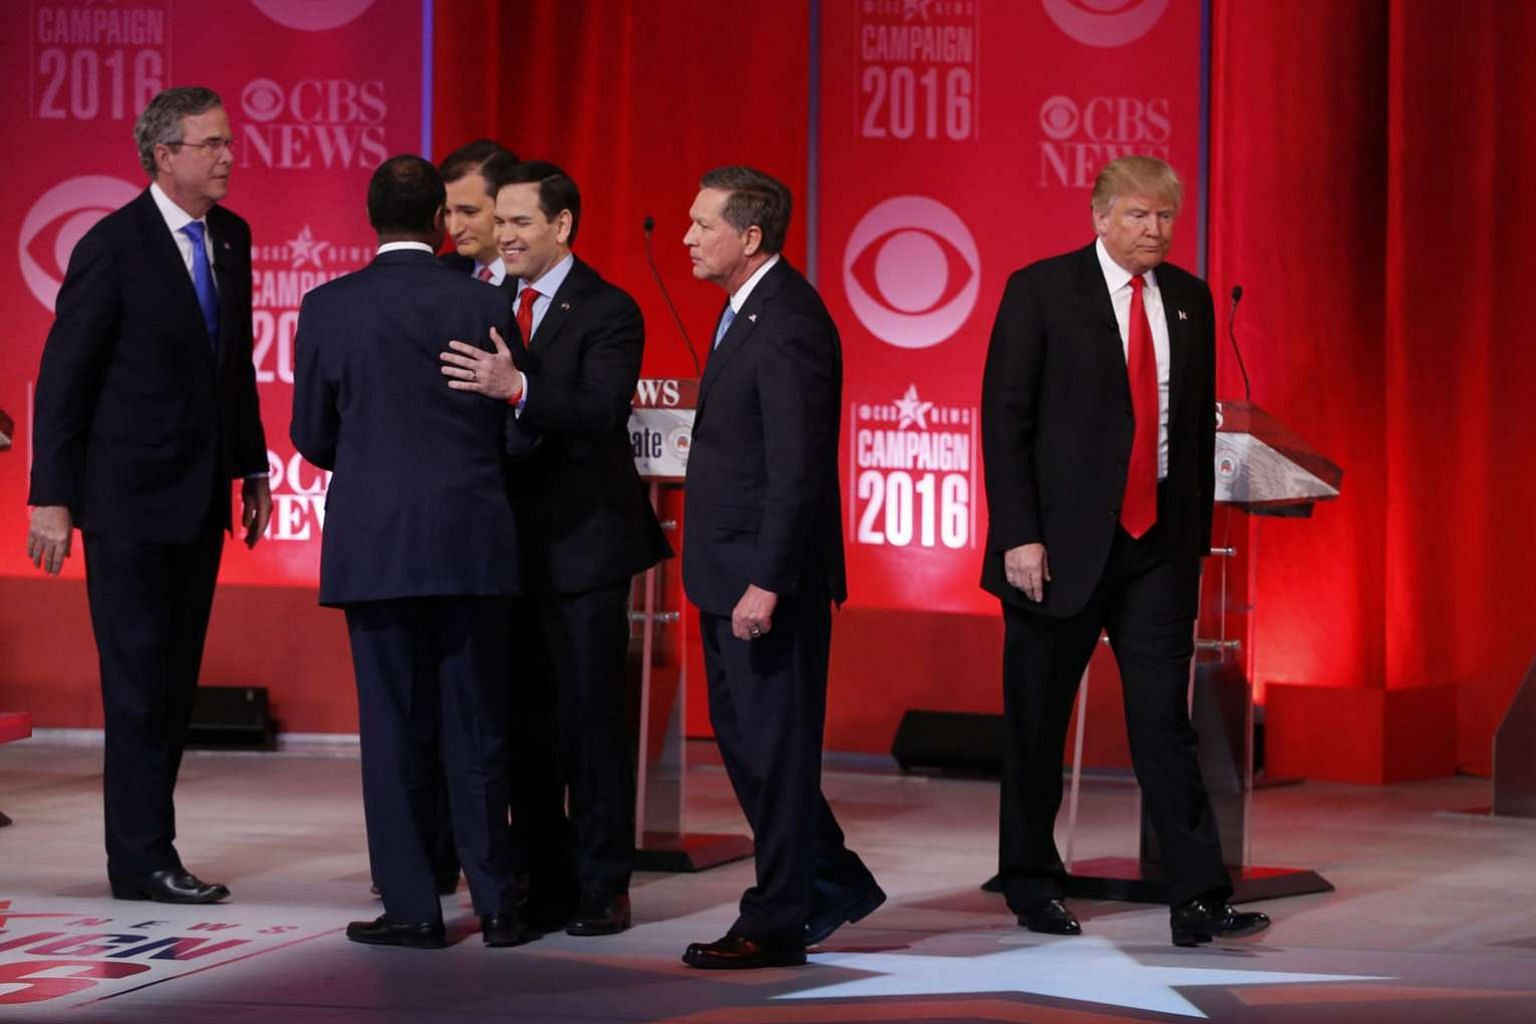 Mr Trump (far right) walking off the stage alone as his former rivals - (from left) Mr Jeb Bush, Dr Ben Carson, Senator Ted Cruz, Senator Marco Rubio and Governor John Kasich - gathered after a Republican presidential candidate debate in February. Mr Kasi